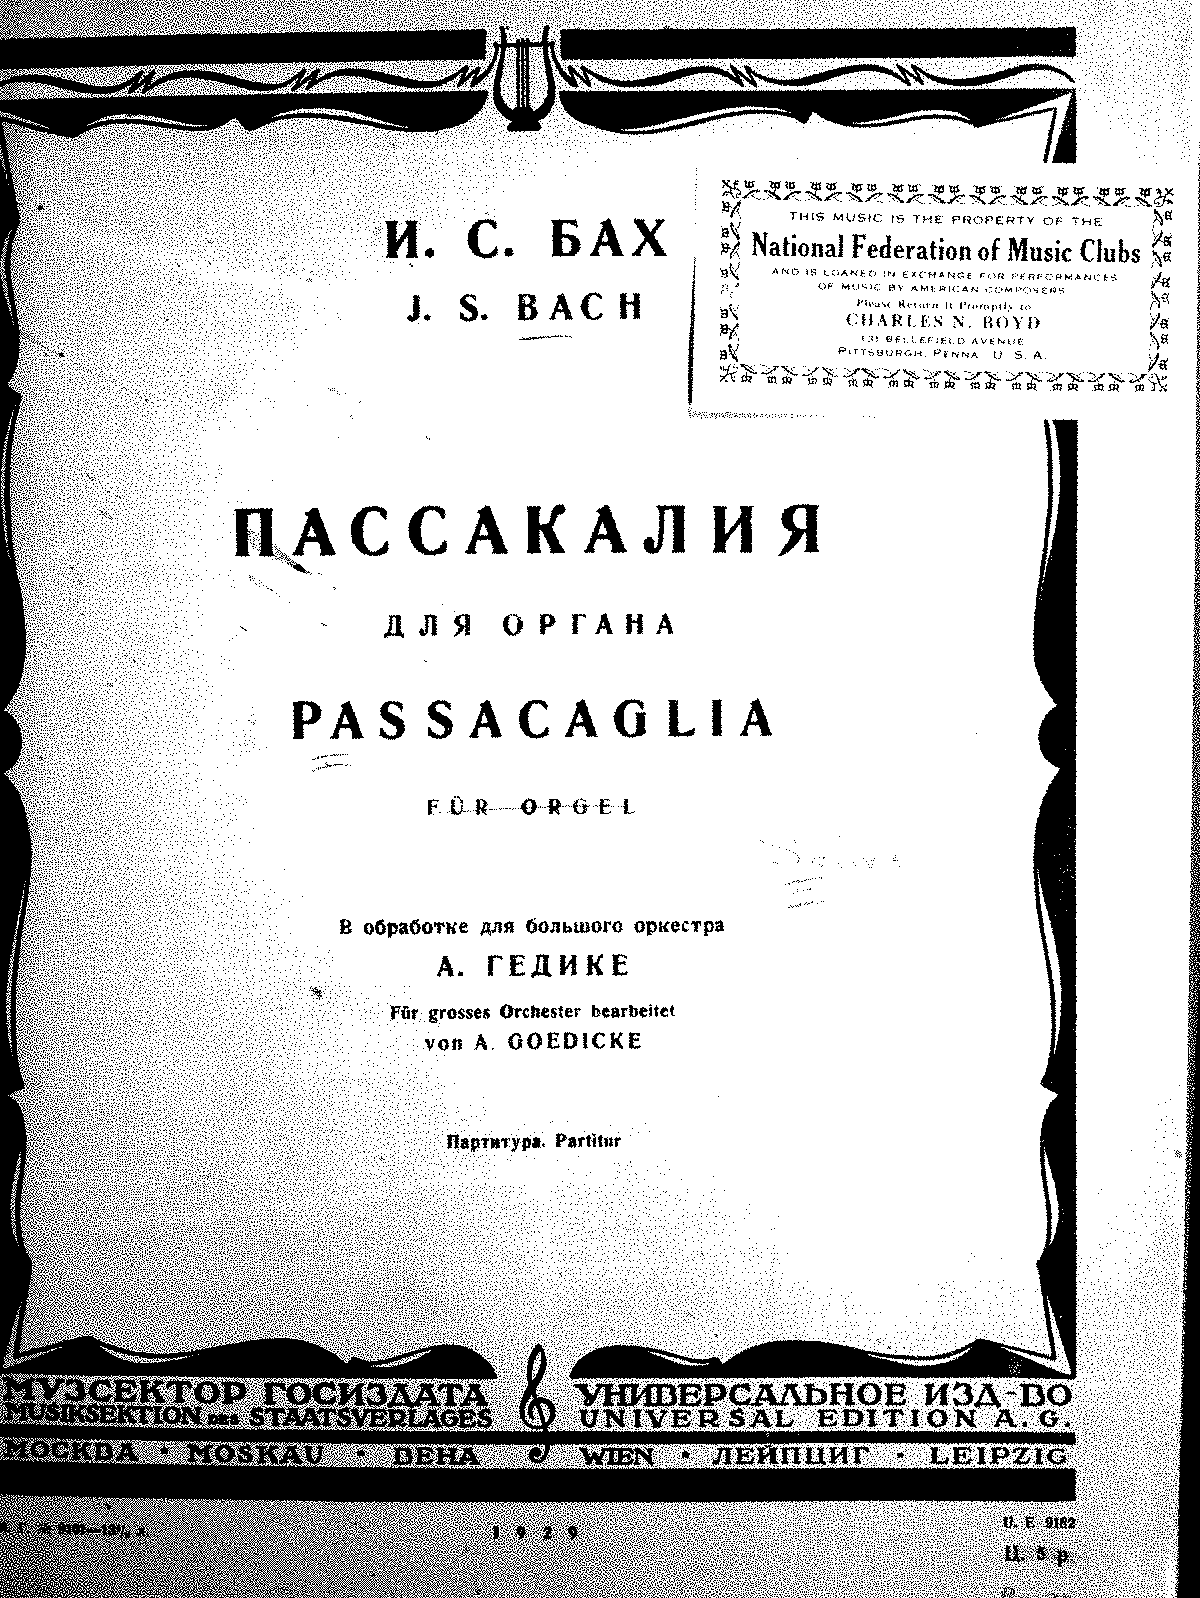 PMLP04326-Bach-Goedicke Passacaglia BWV 582 Fur grosses Orchester bearbeitet.pdf